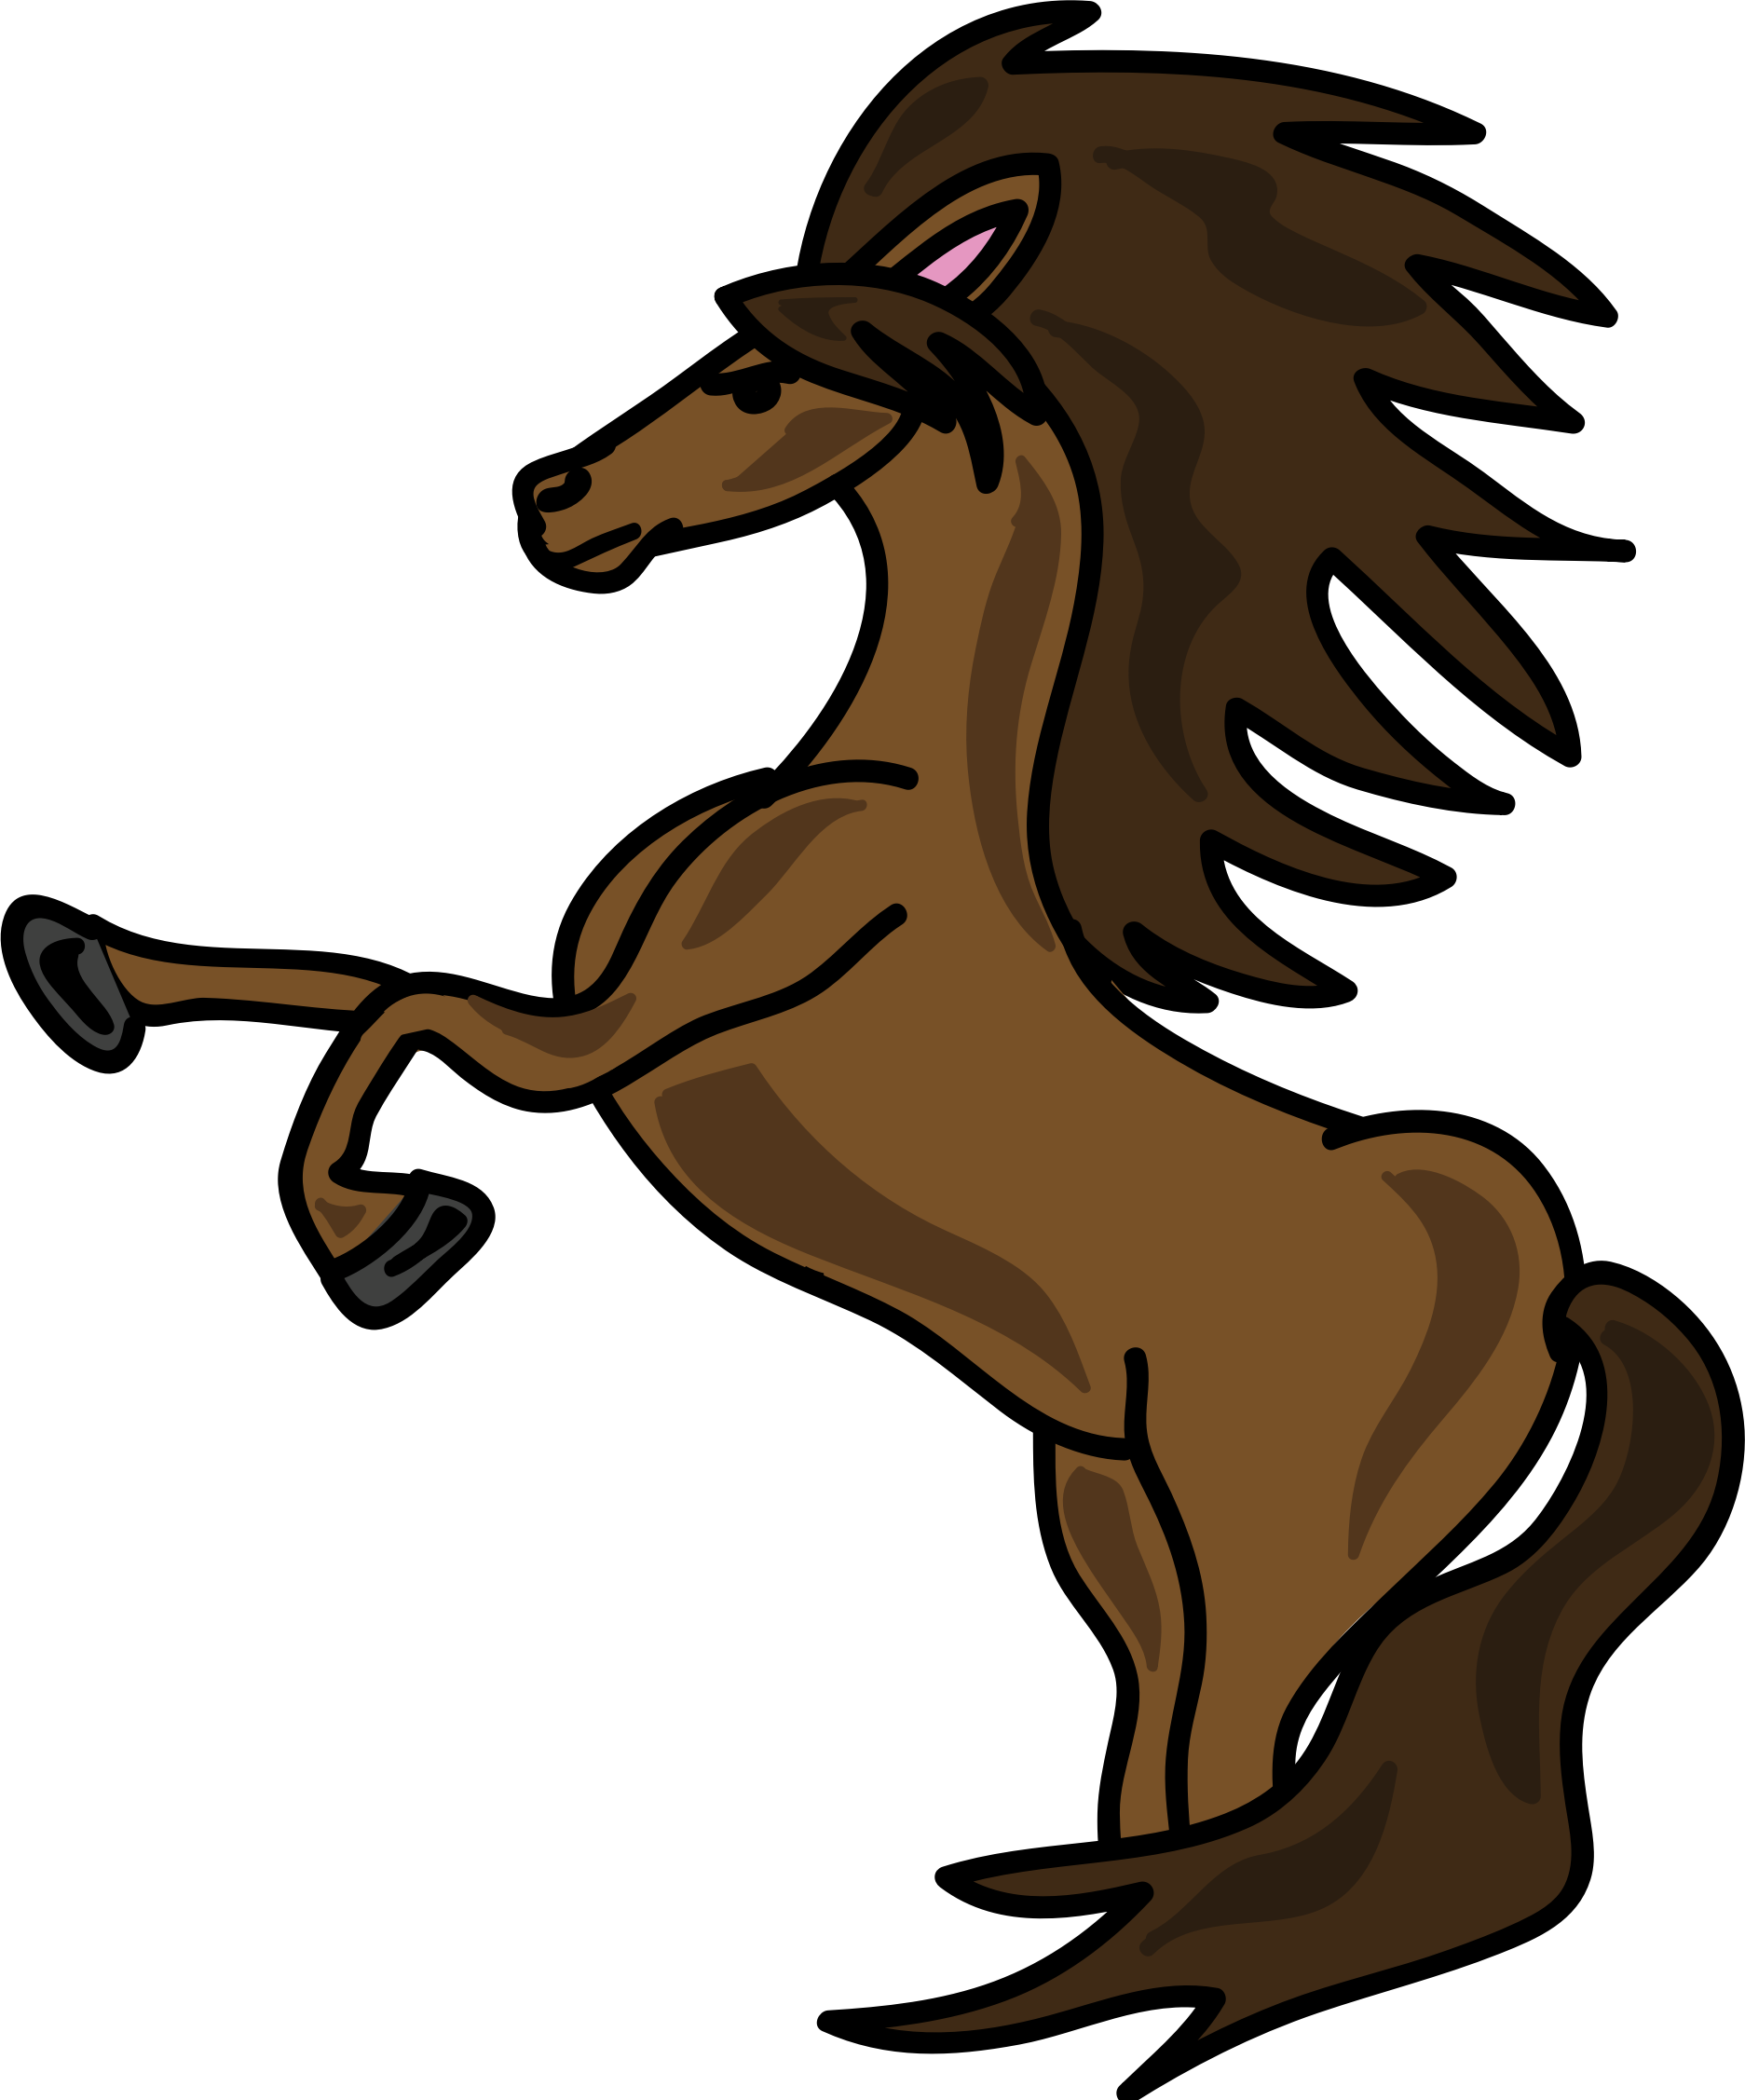 Horse clipart domestic animal. Brown big image png